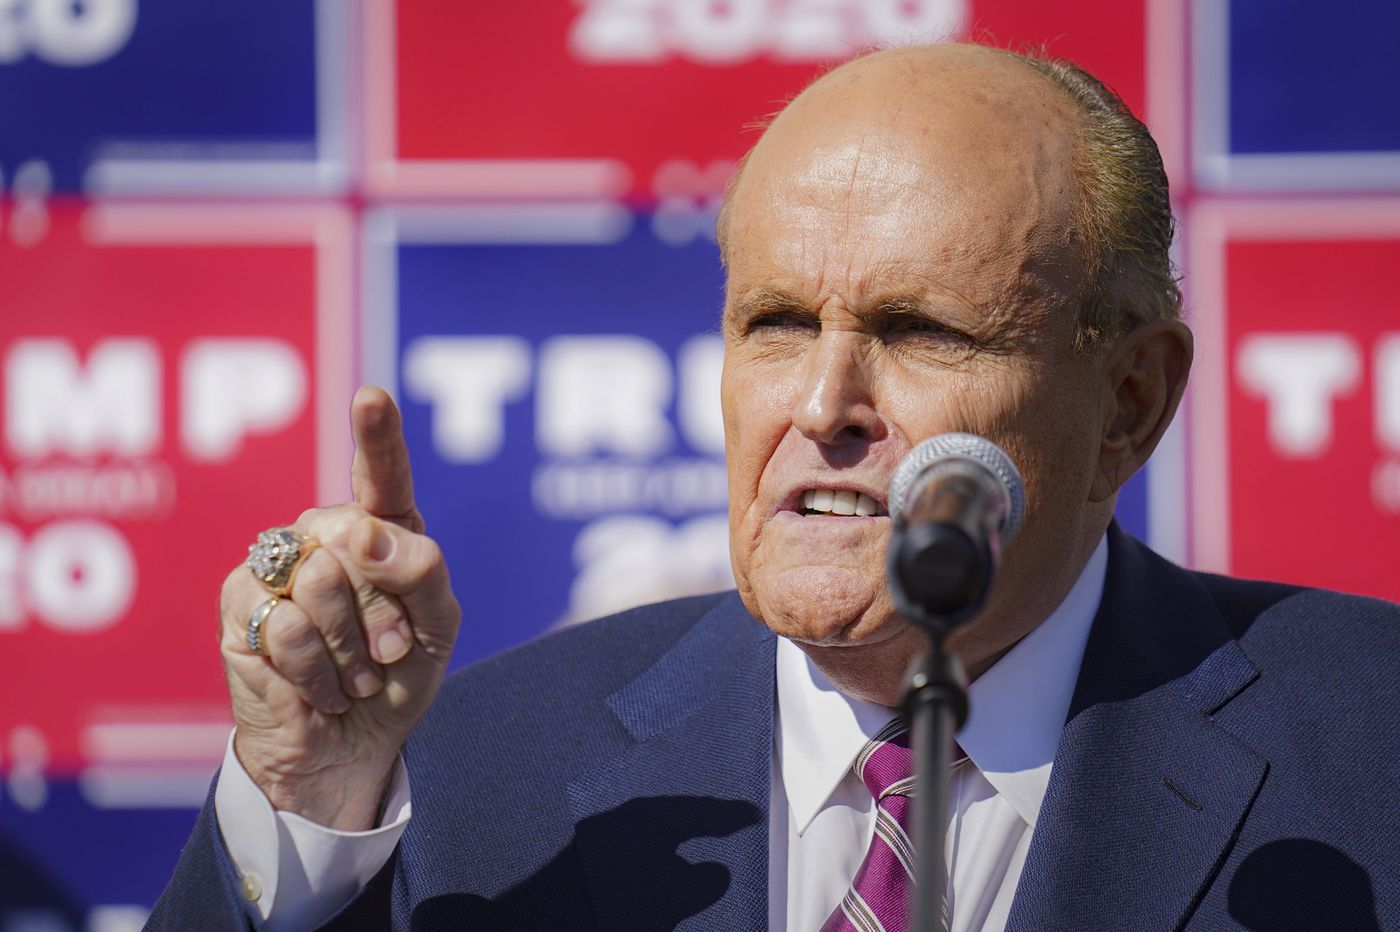 Rudy Giuliani's courtroom showing in Pa. election fight left many scratching their heads. Trump backers praised it as 'brilliant.'